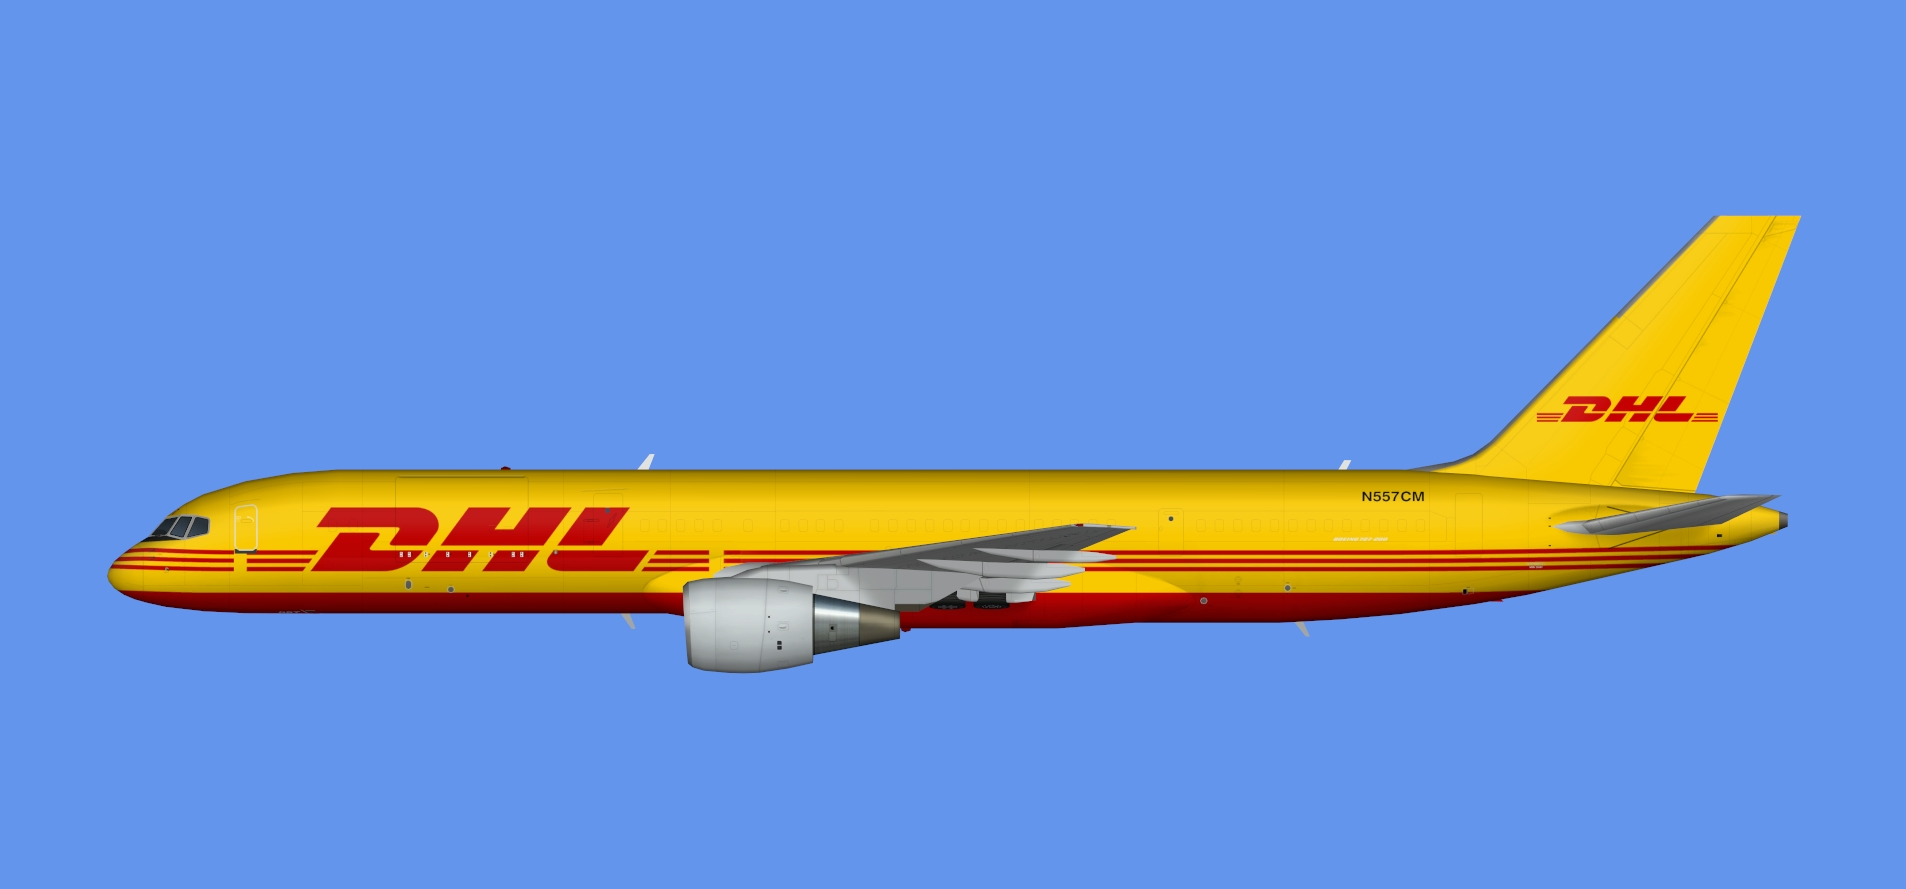 Air Transport International/DHL Boeing 757